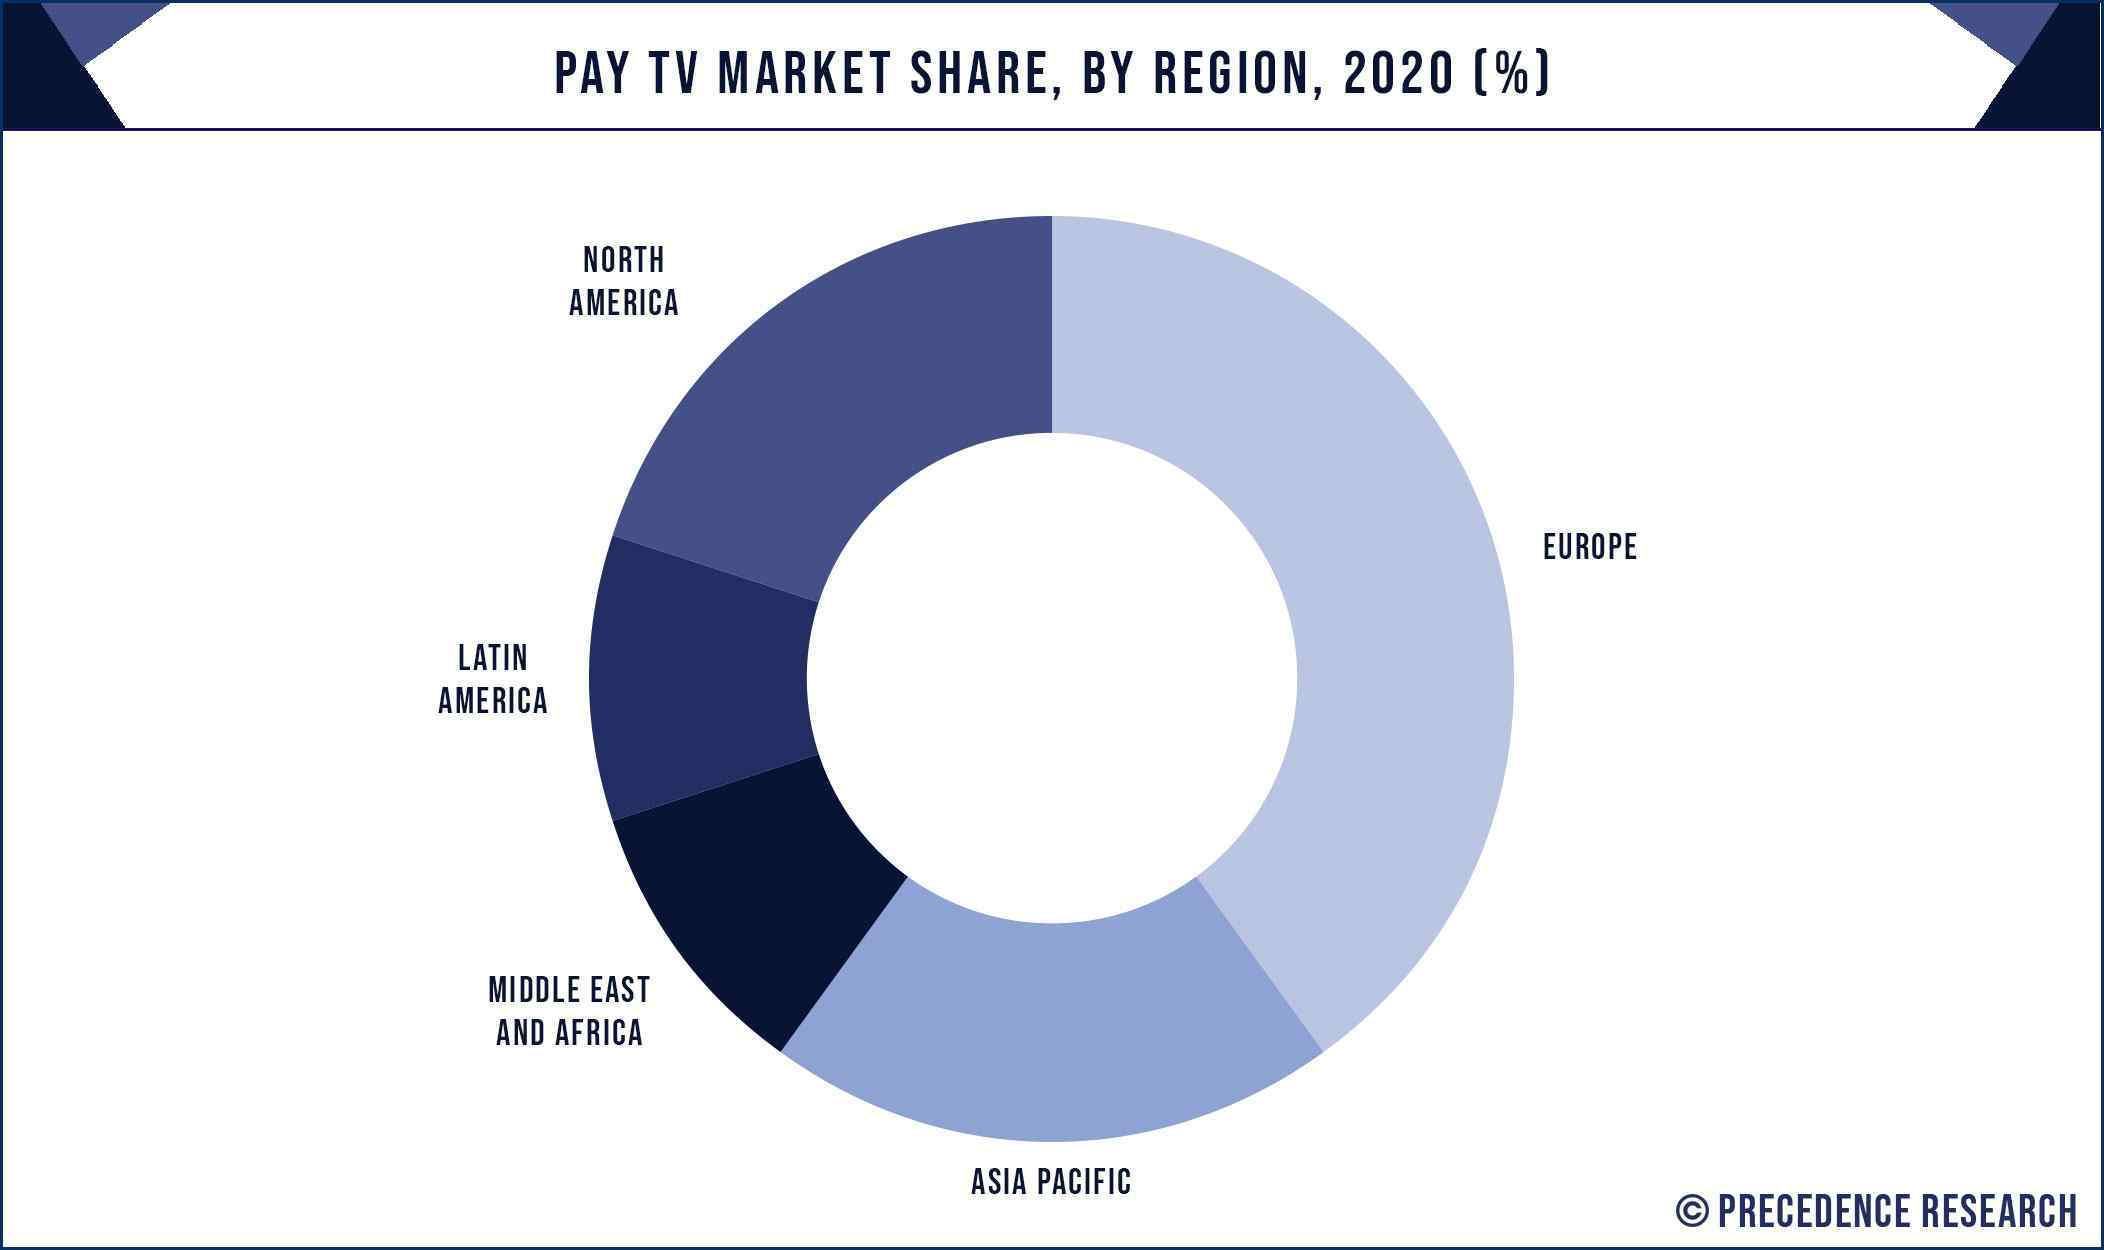 Pay TV Market Share, By Region, 2020 (%)